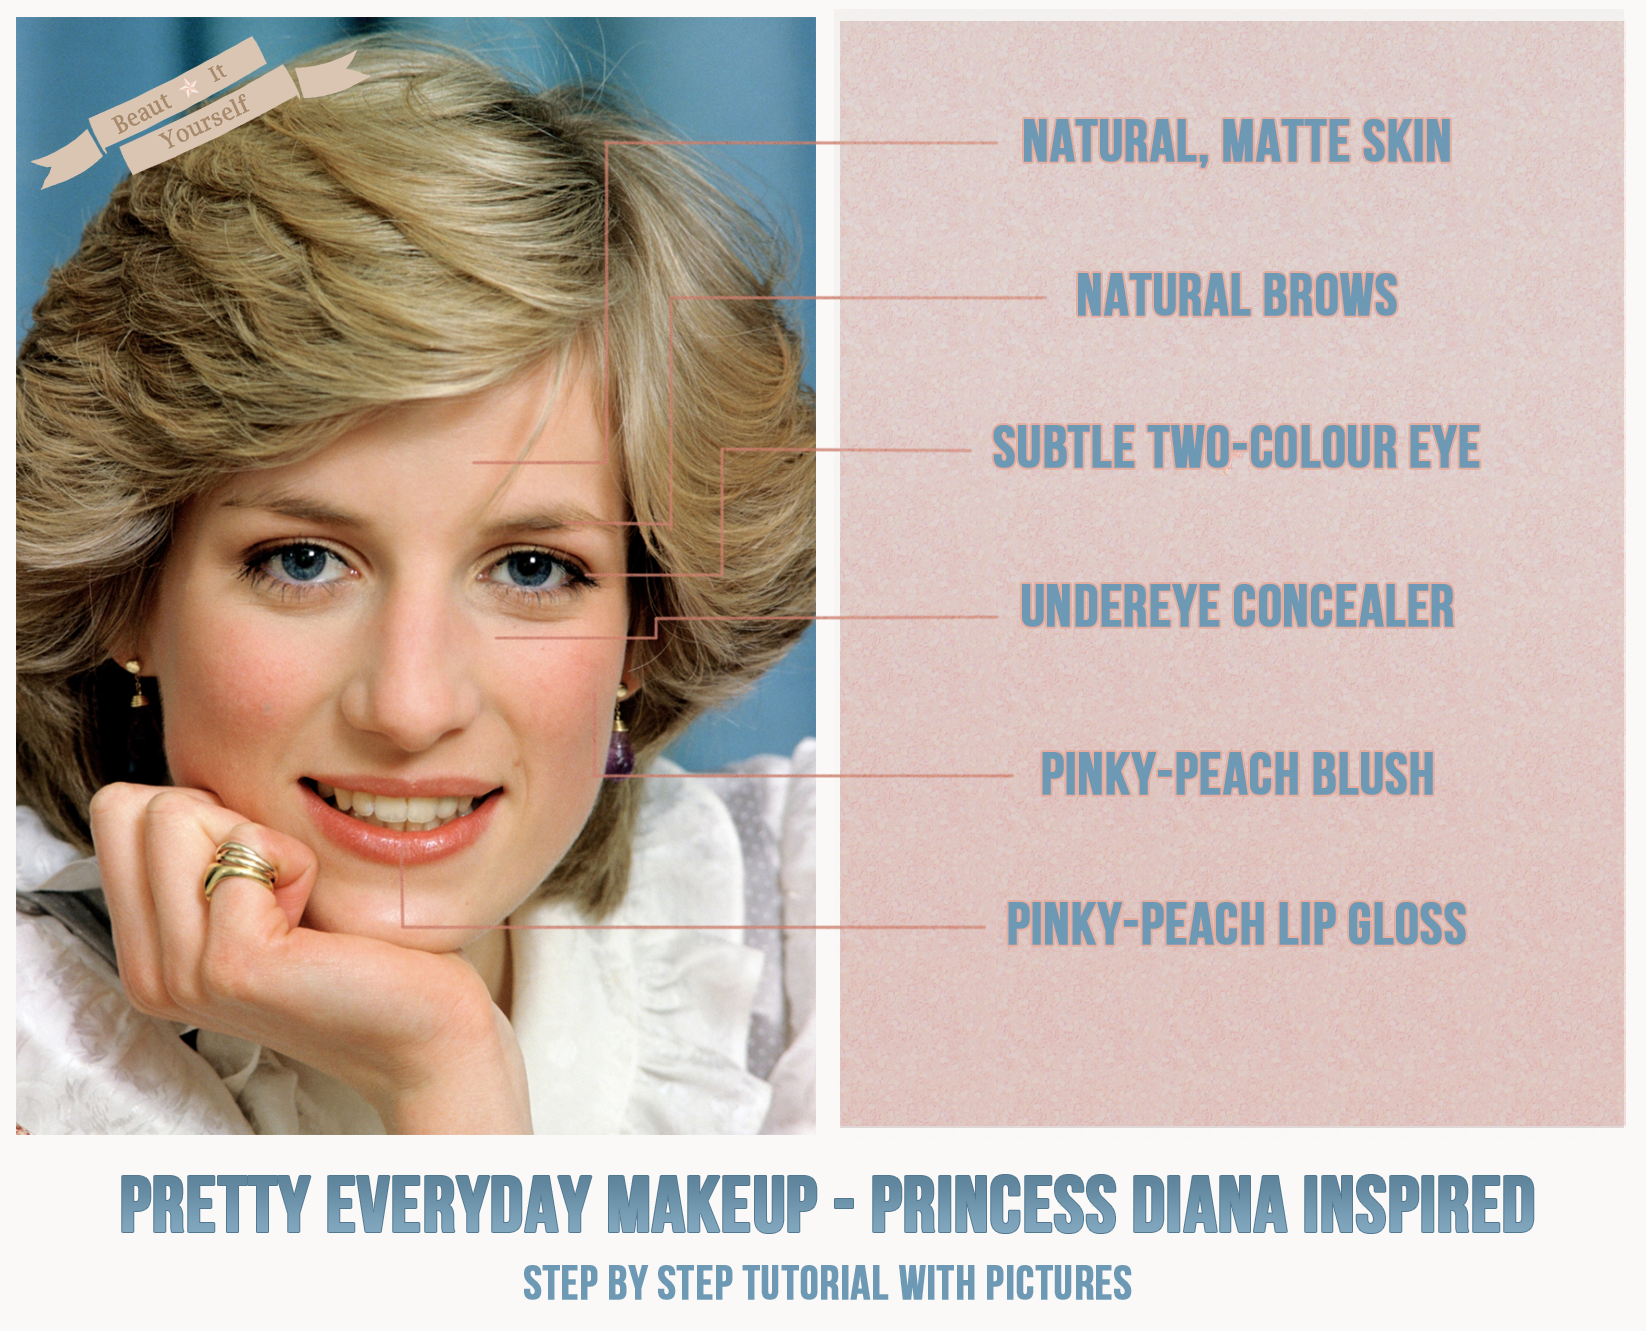 Pretty everyday makeup a princess diana inspired makeup tutorial pretty everyday makeup a princess diana inspired makeup tutorial get her look with this baditri Images